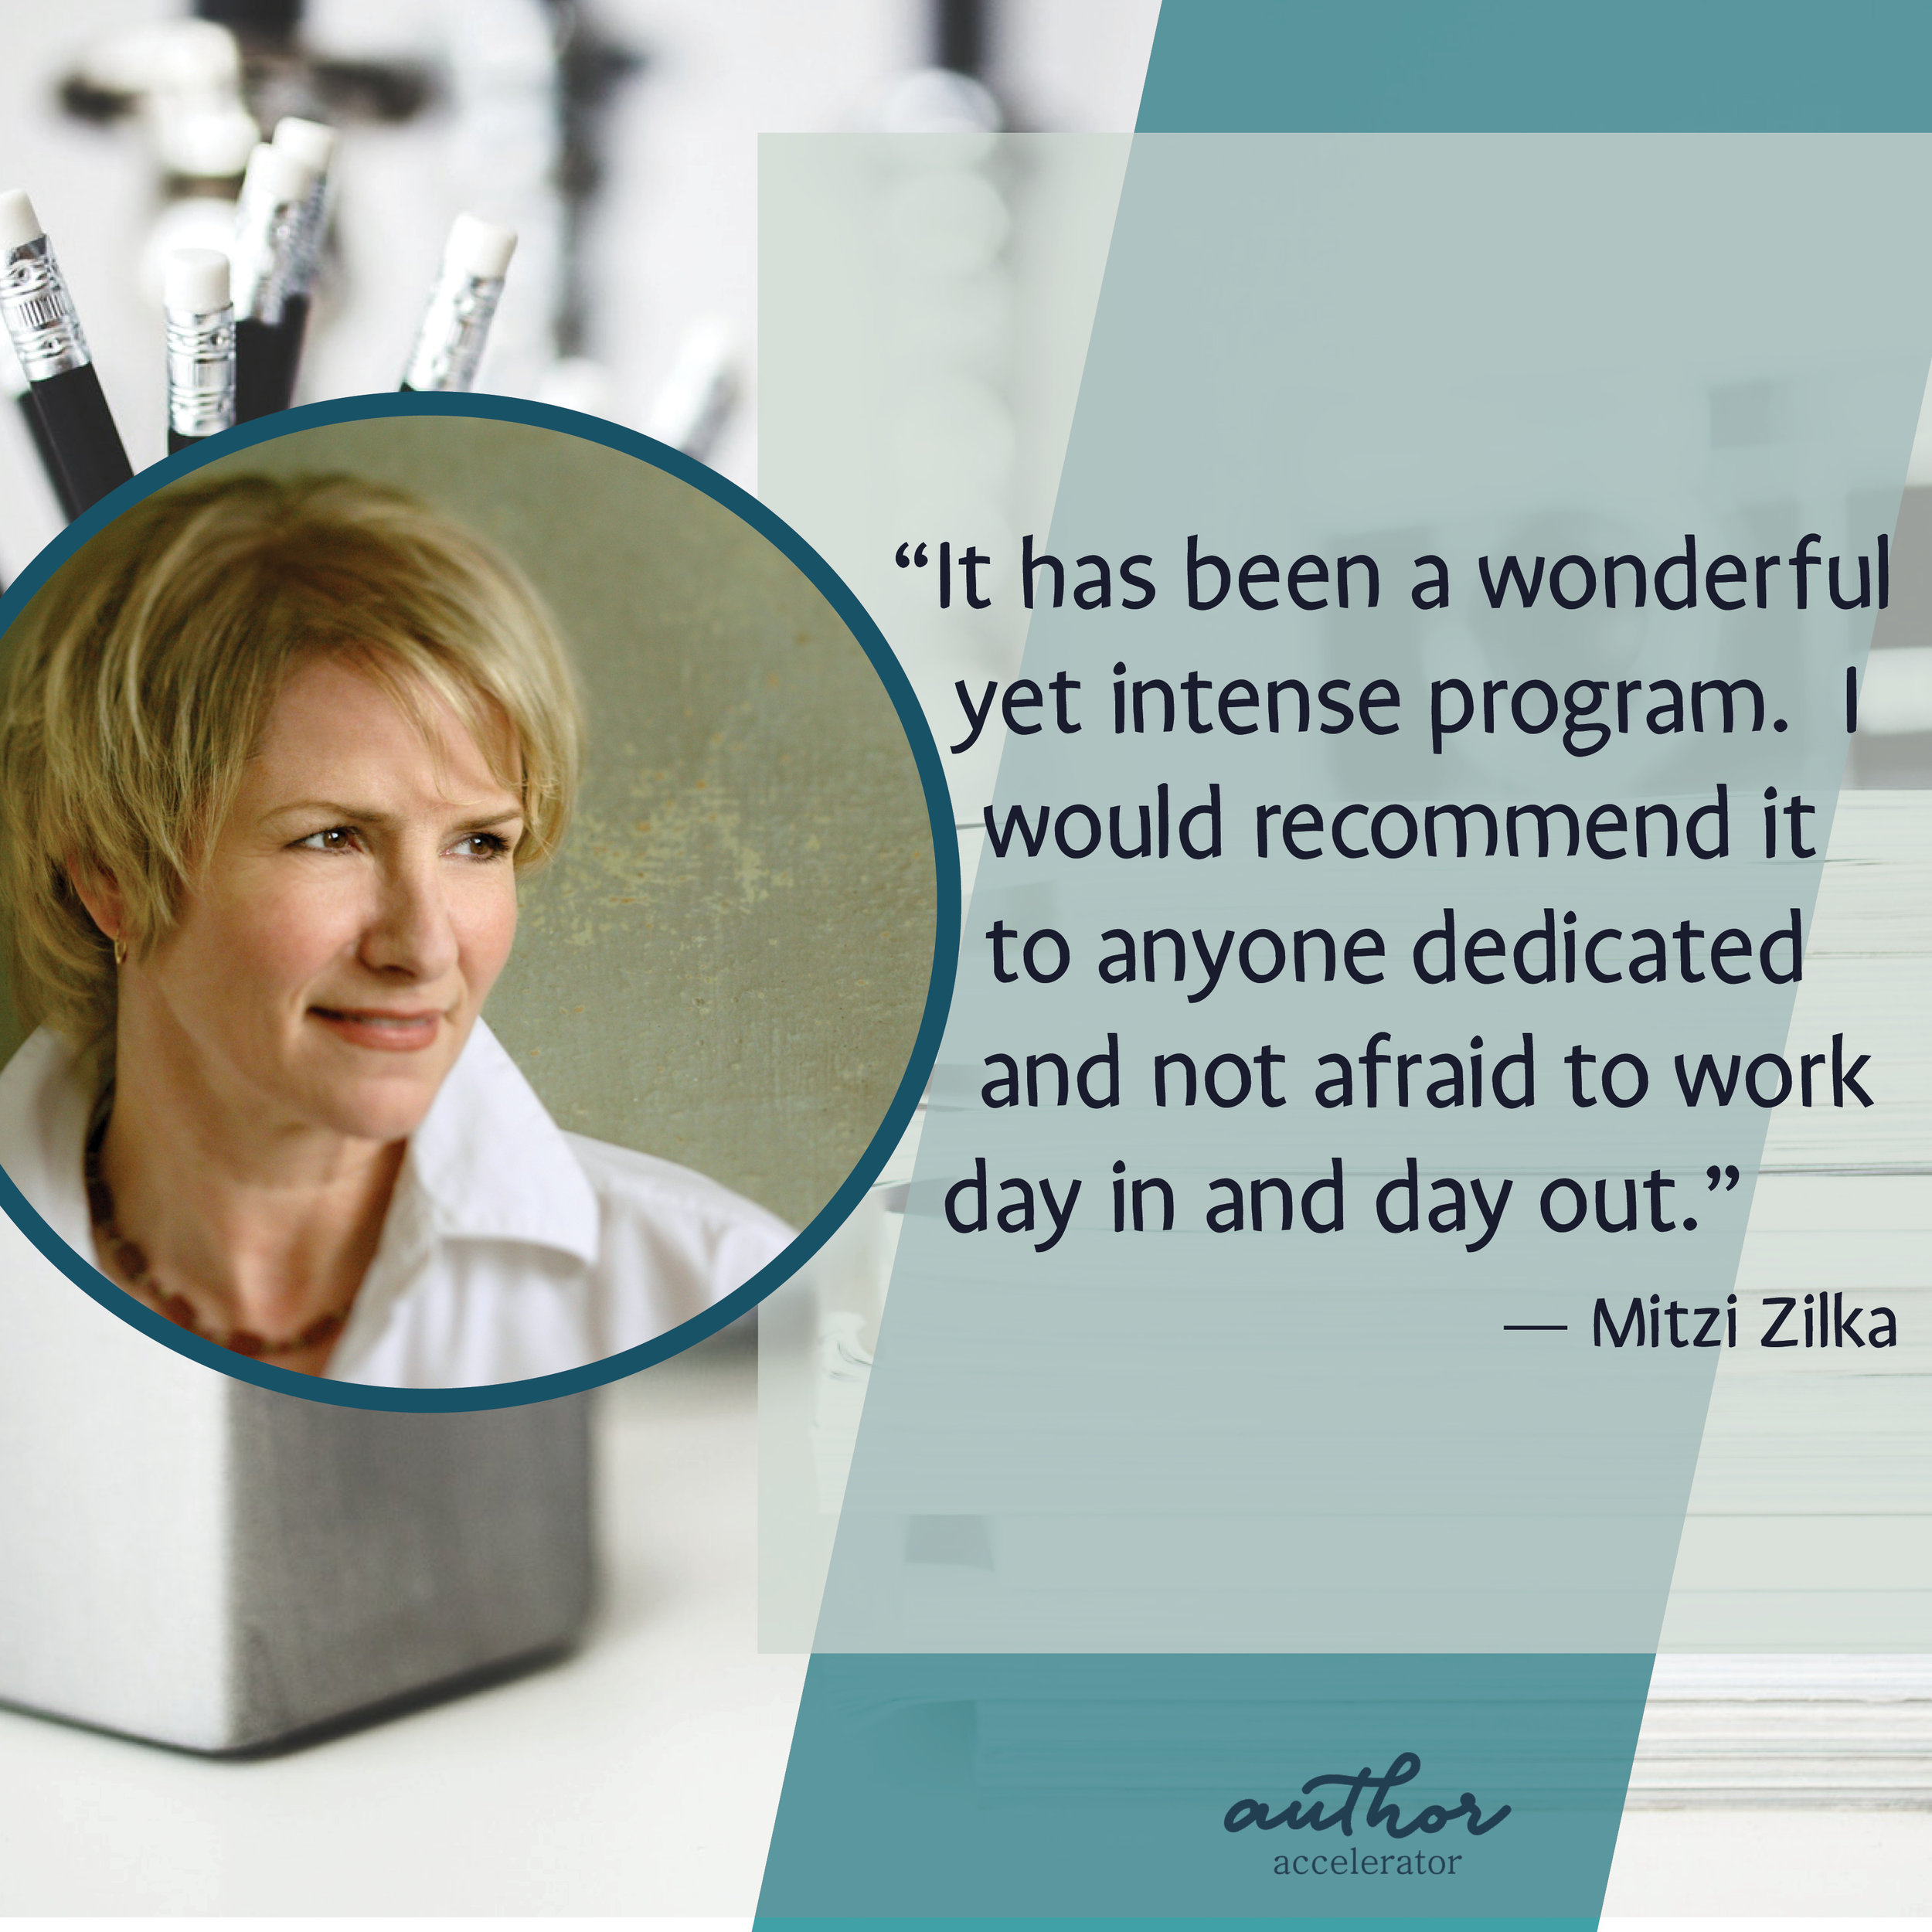 Mitzi Zilka finished her manuscript in 8 months with Author Accelerator.  Read about her journey .